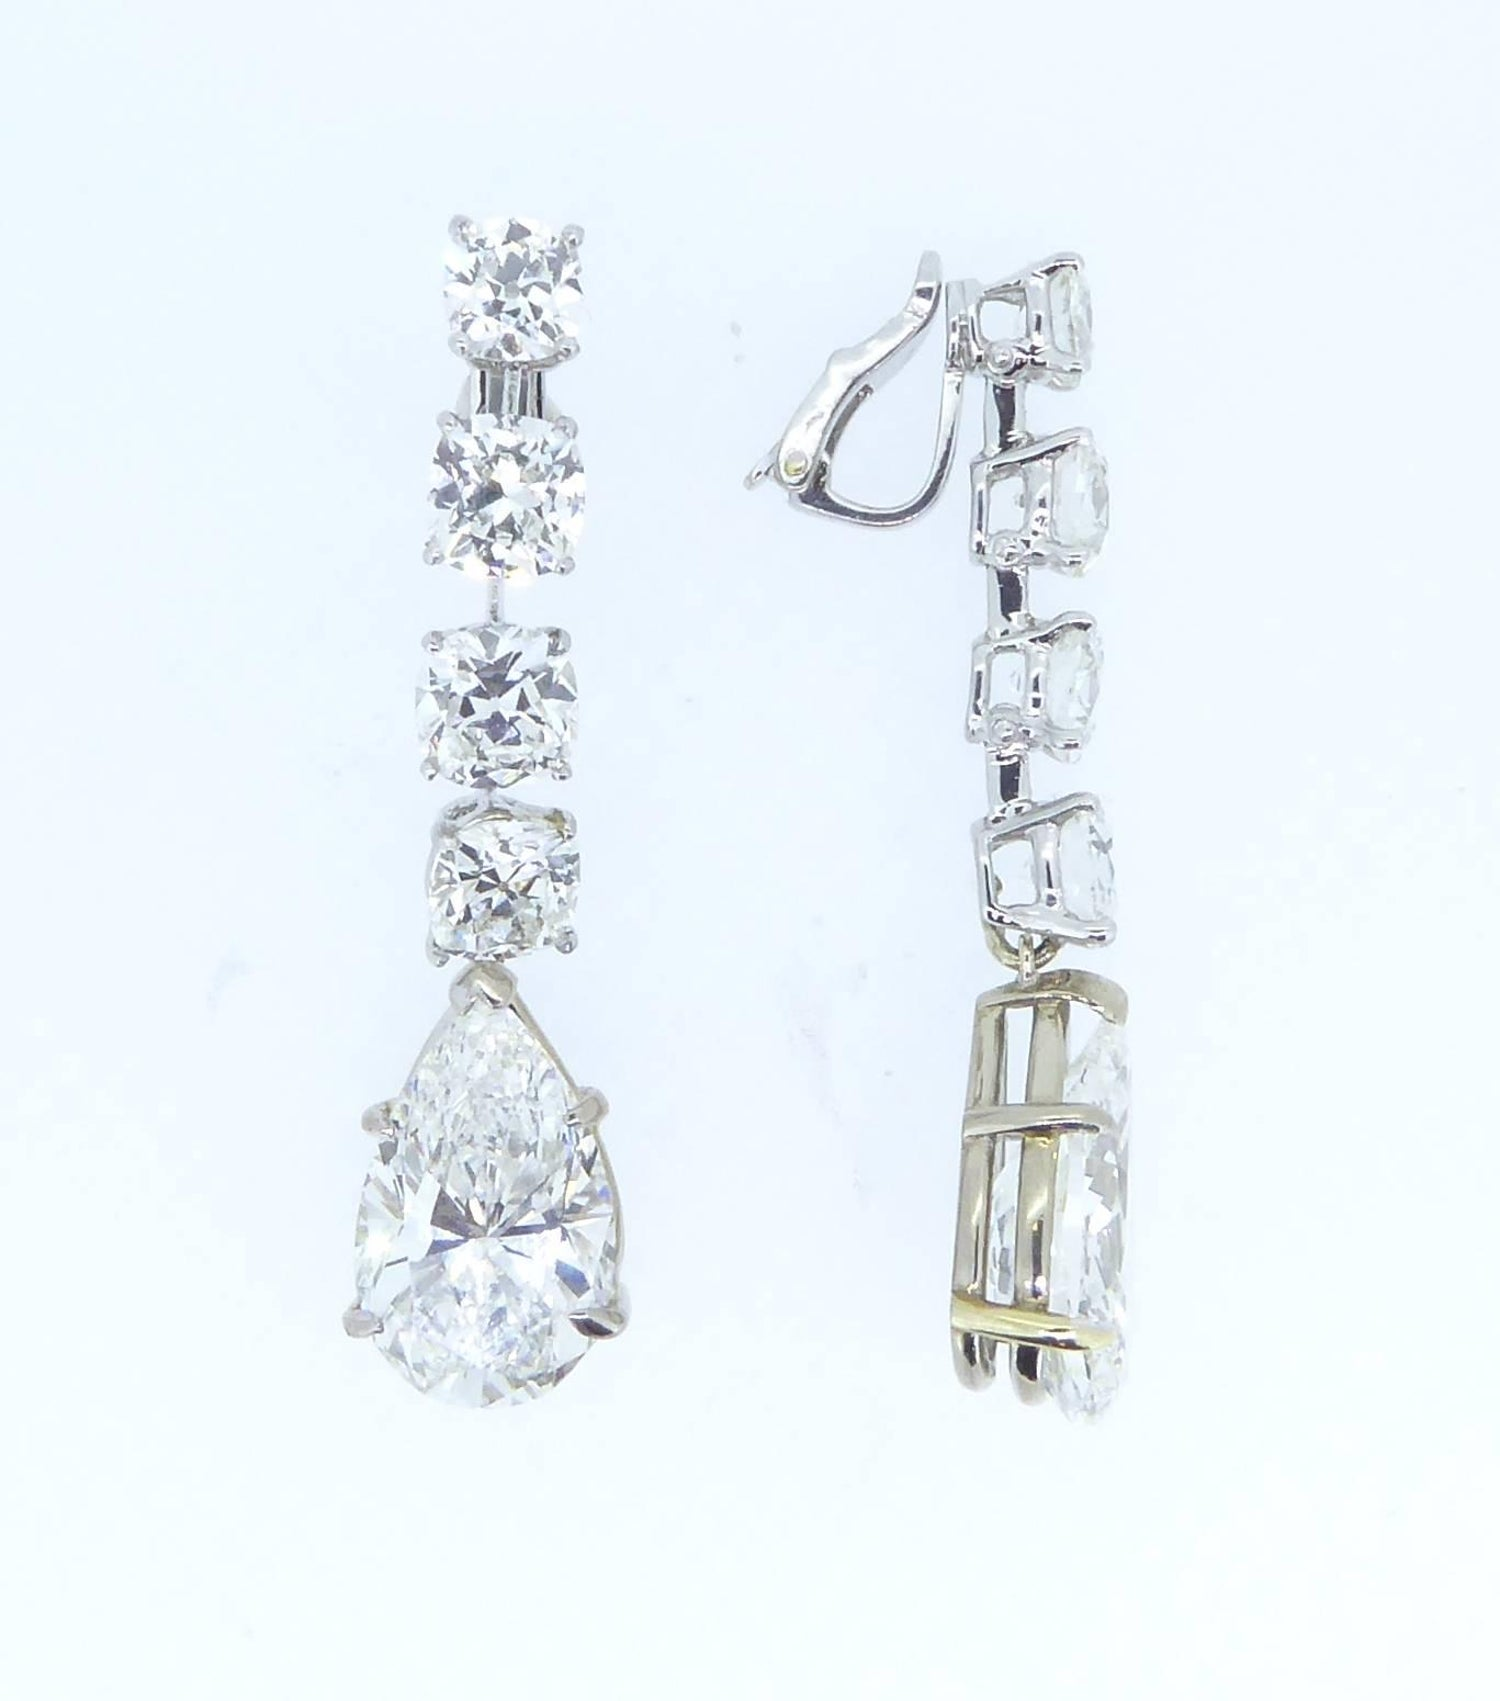 givenchy zi jewelry silk rectangular gold accessories c crystal drop rhinestone diamond earrings